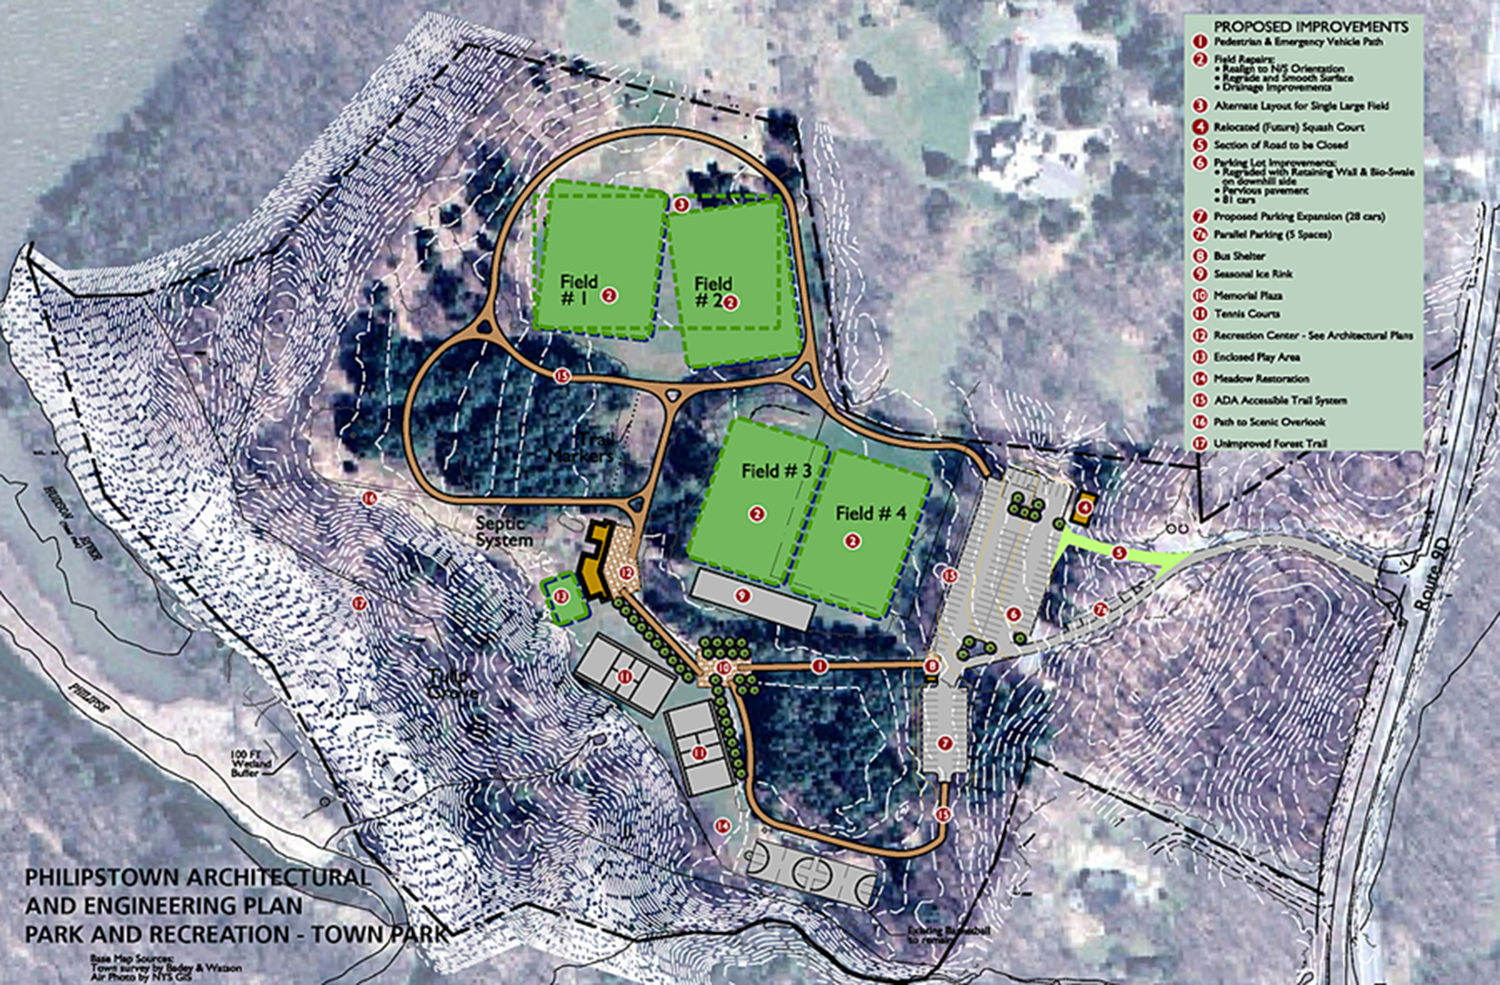 Philipstown Town Park site plan